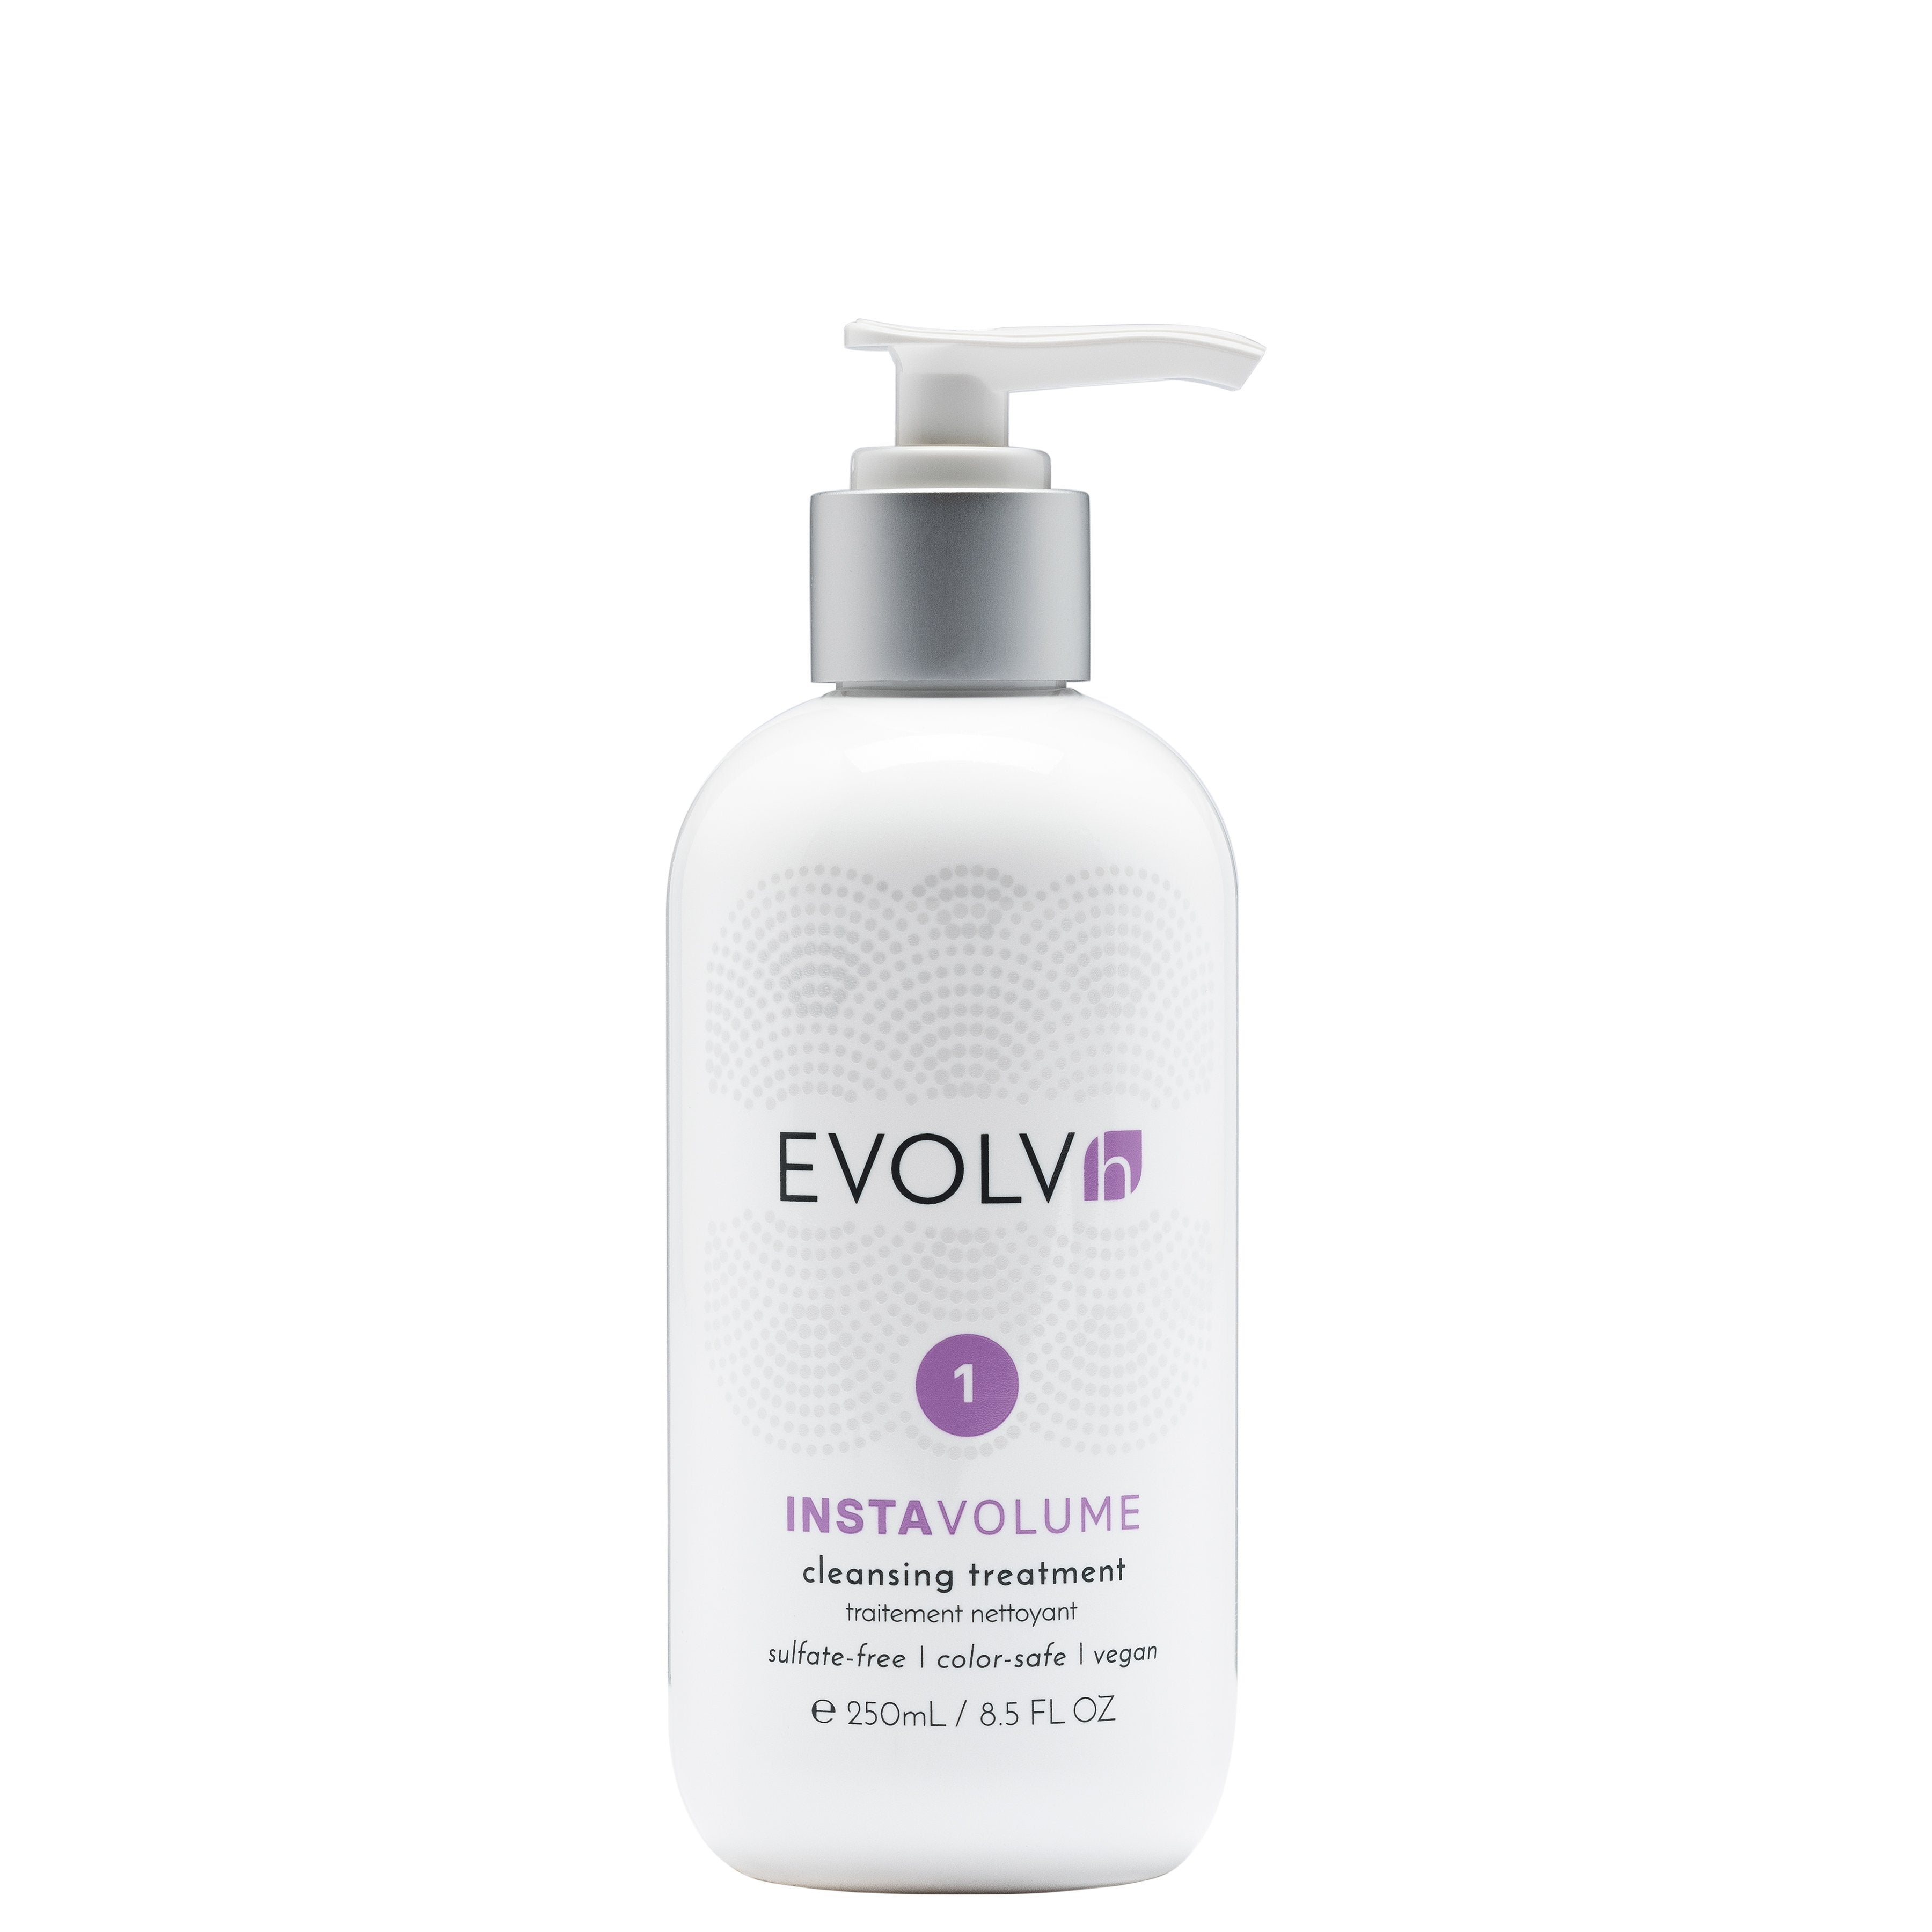 InstaVolume Cleansing Treatment